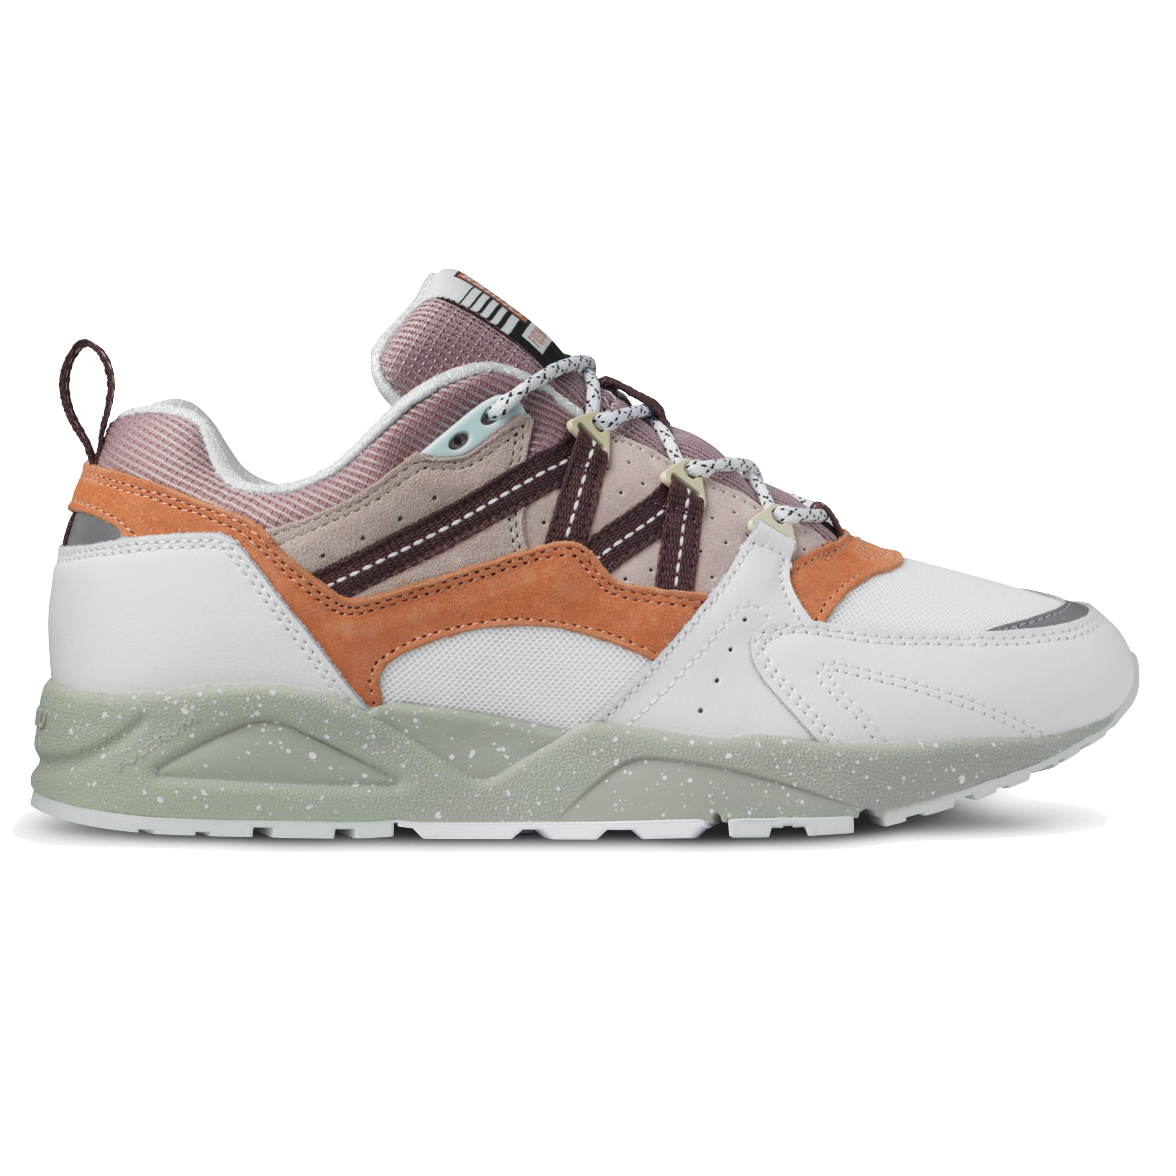 karhu-fusion-2-0-speckled-pack-bright-white-pheasant-side-1